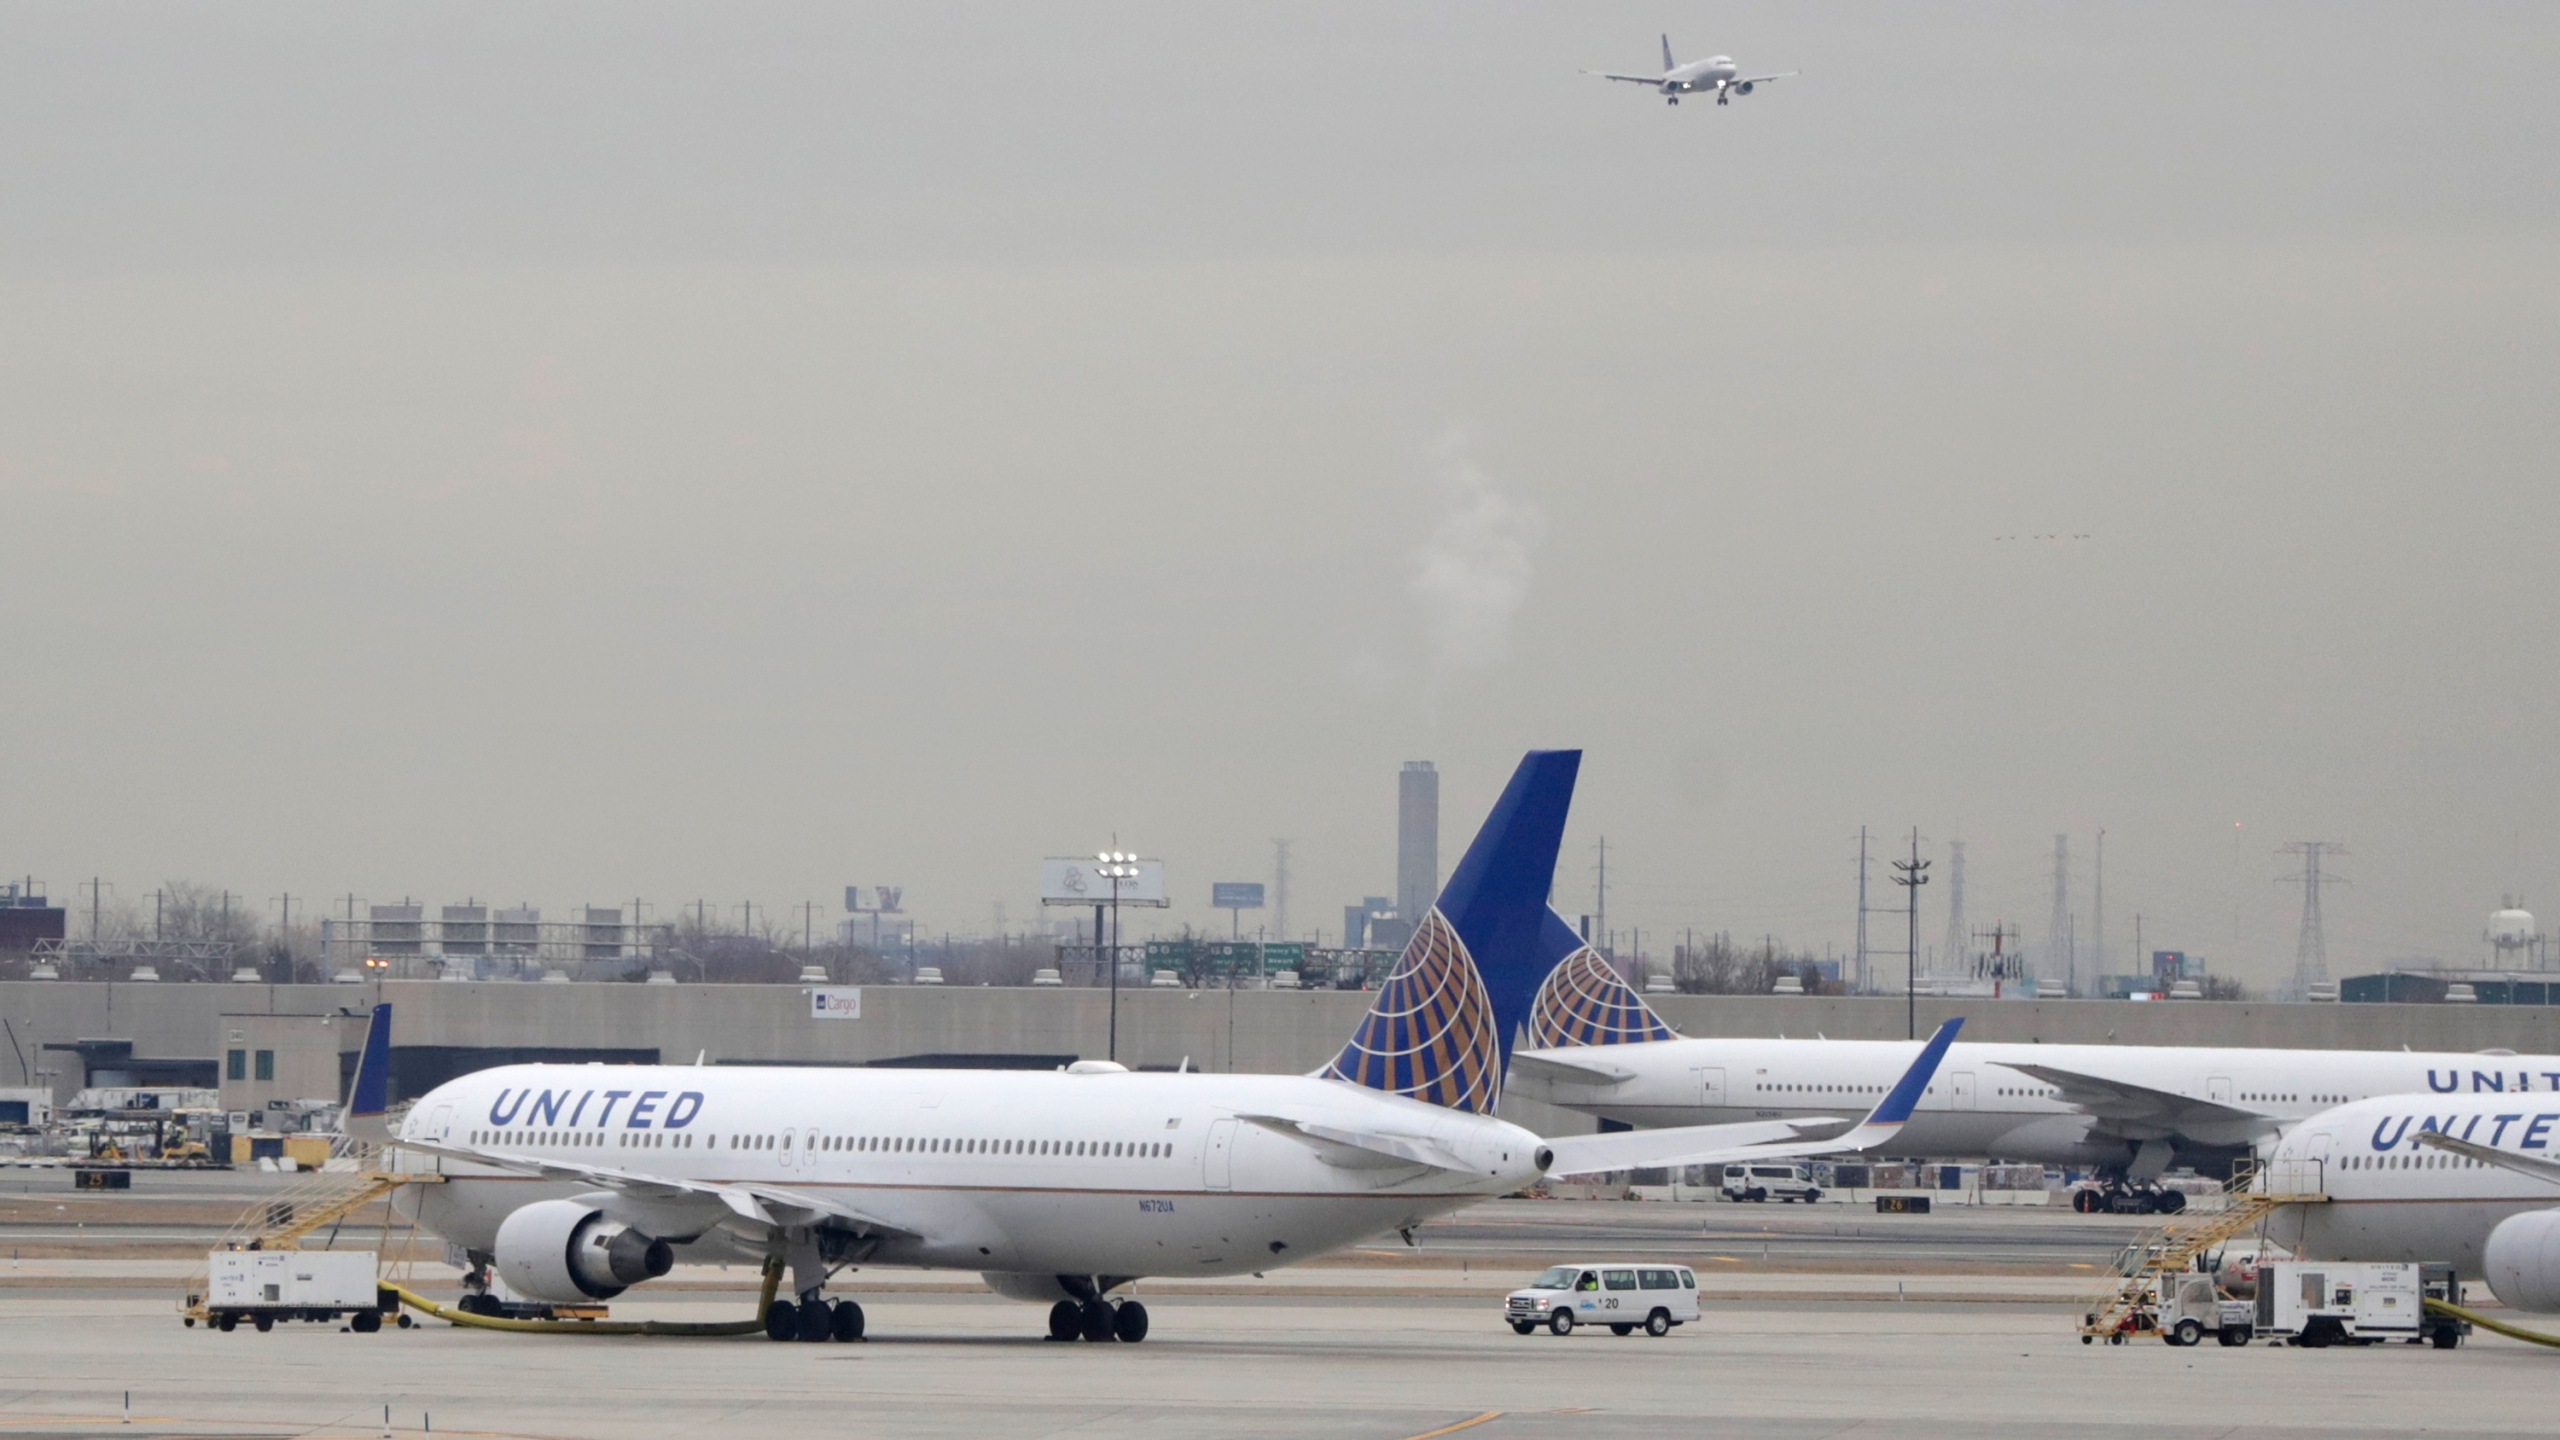 United_Airlines_Premium_Seats_95101-159532.jpg66609123